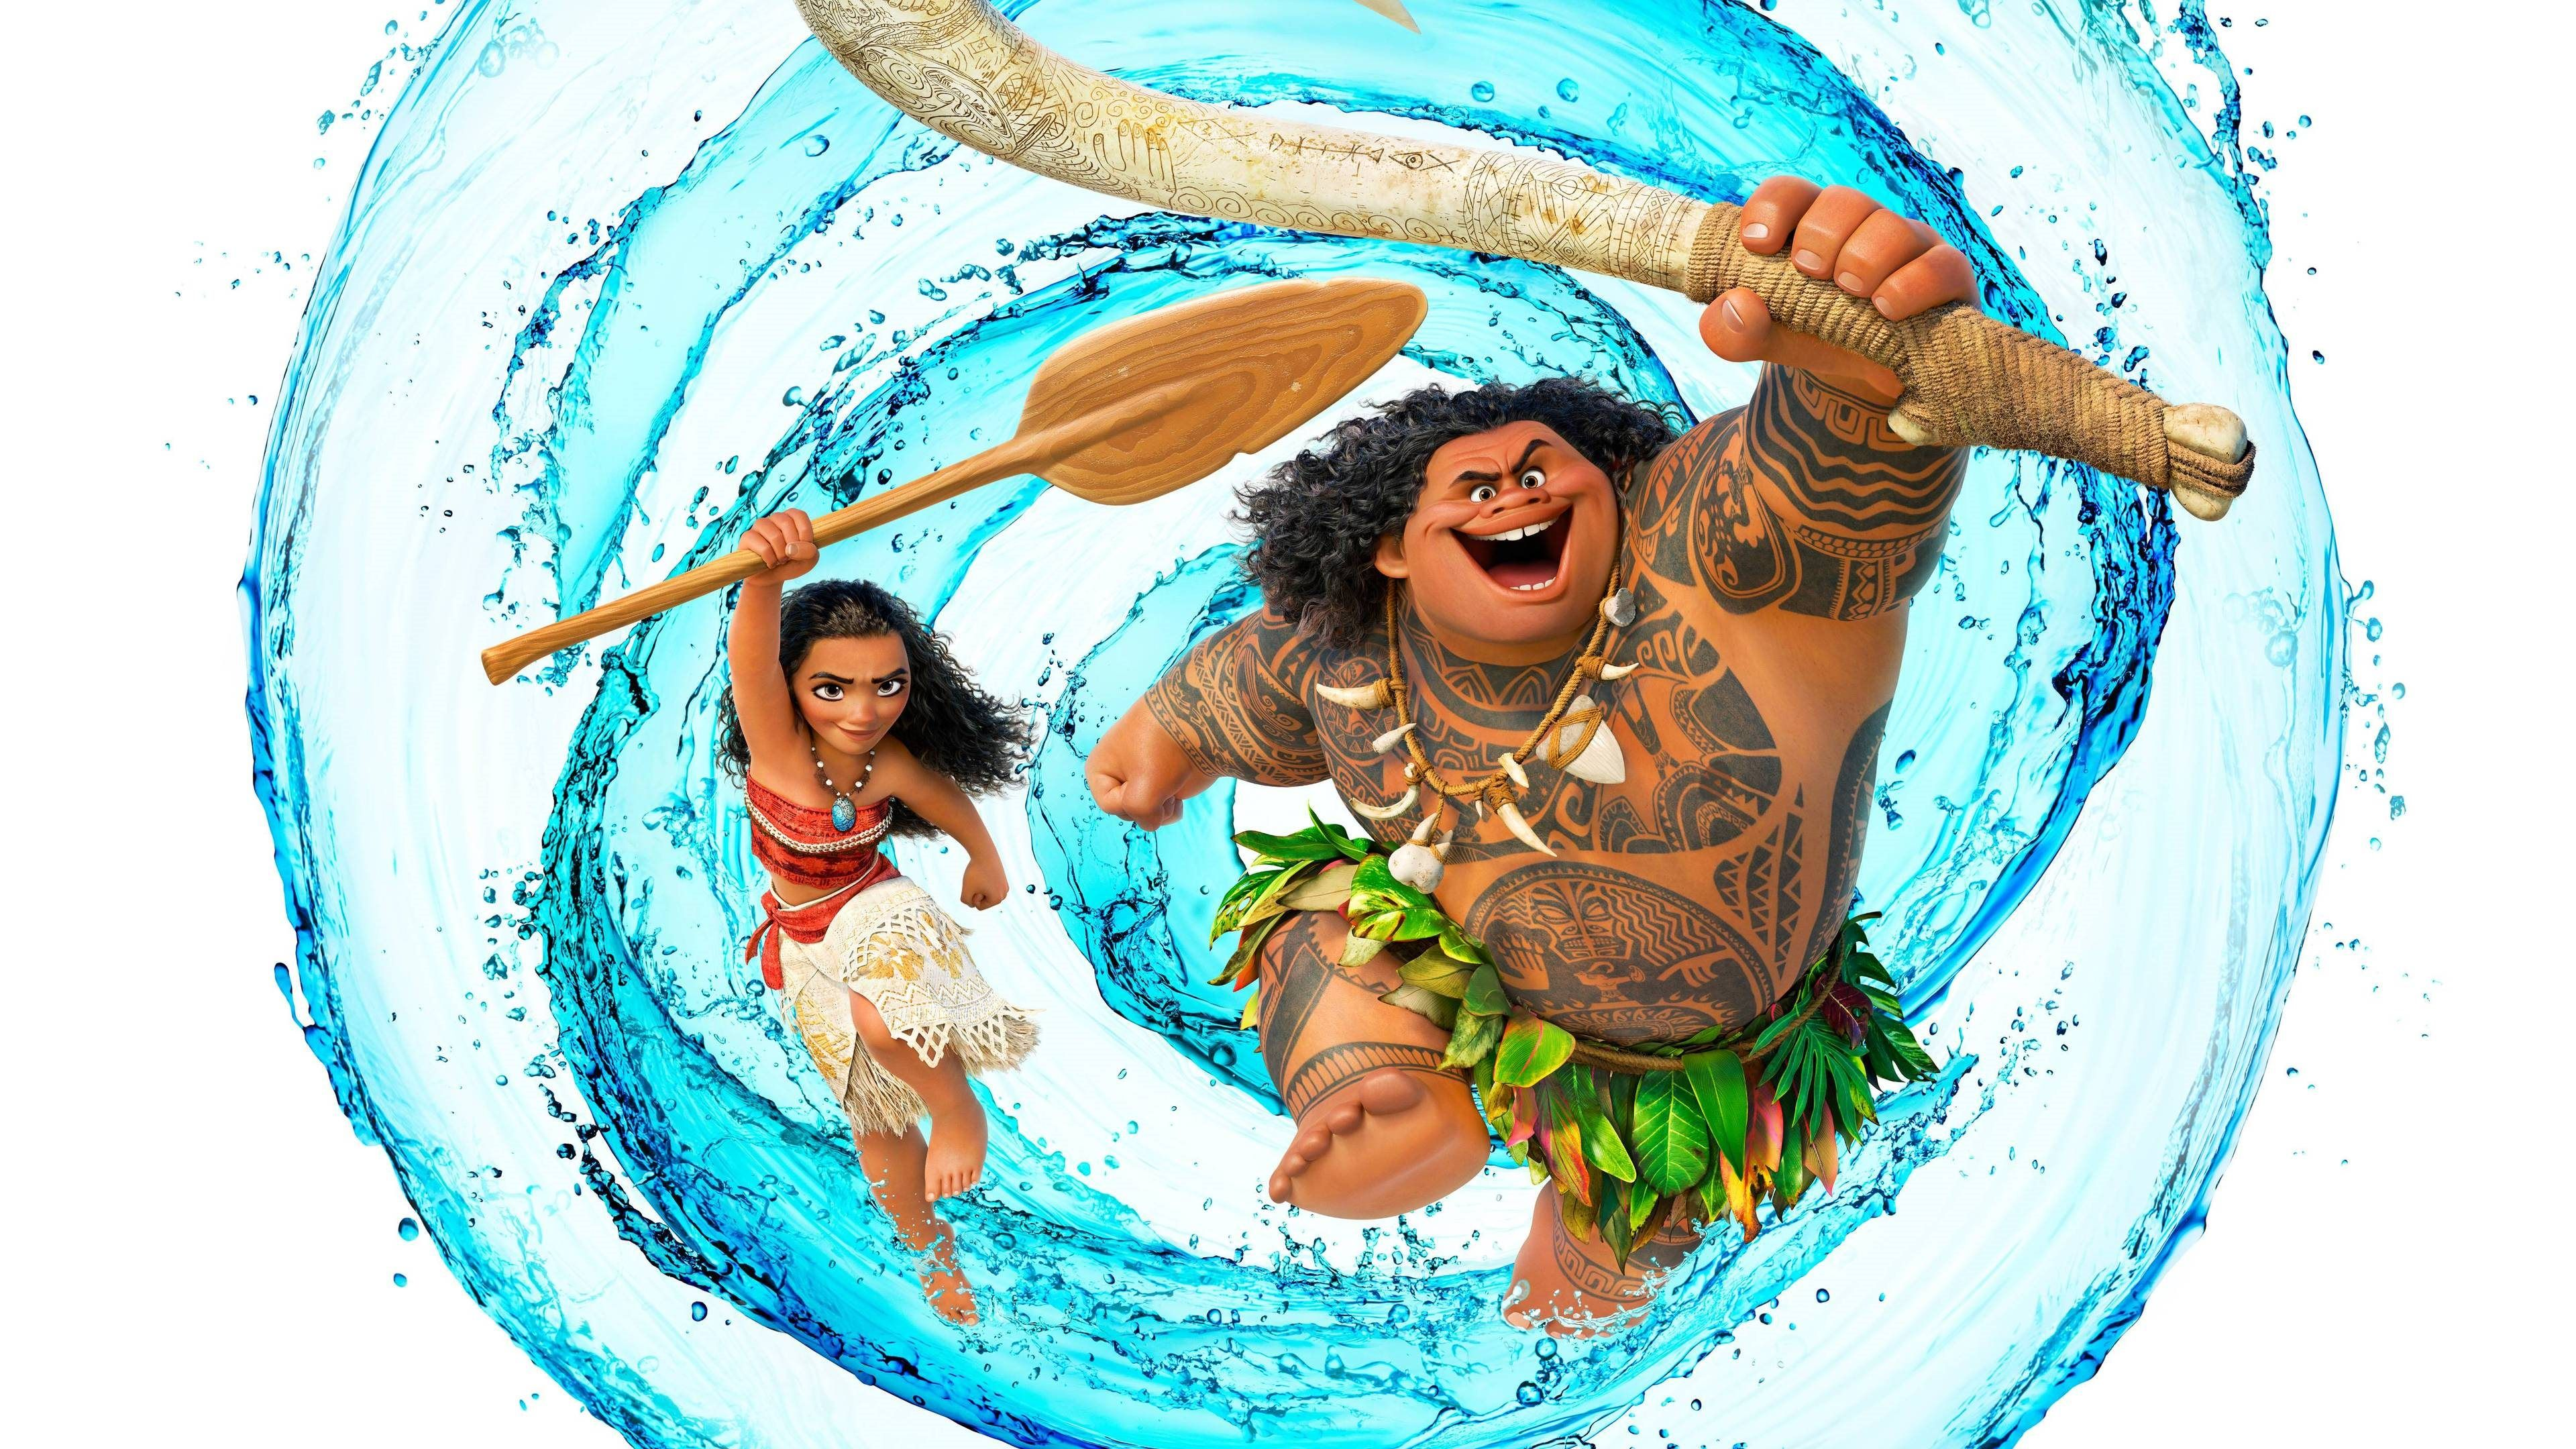 Download wallpapers Maui, Moana, 3danimation, 4k Moana